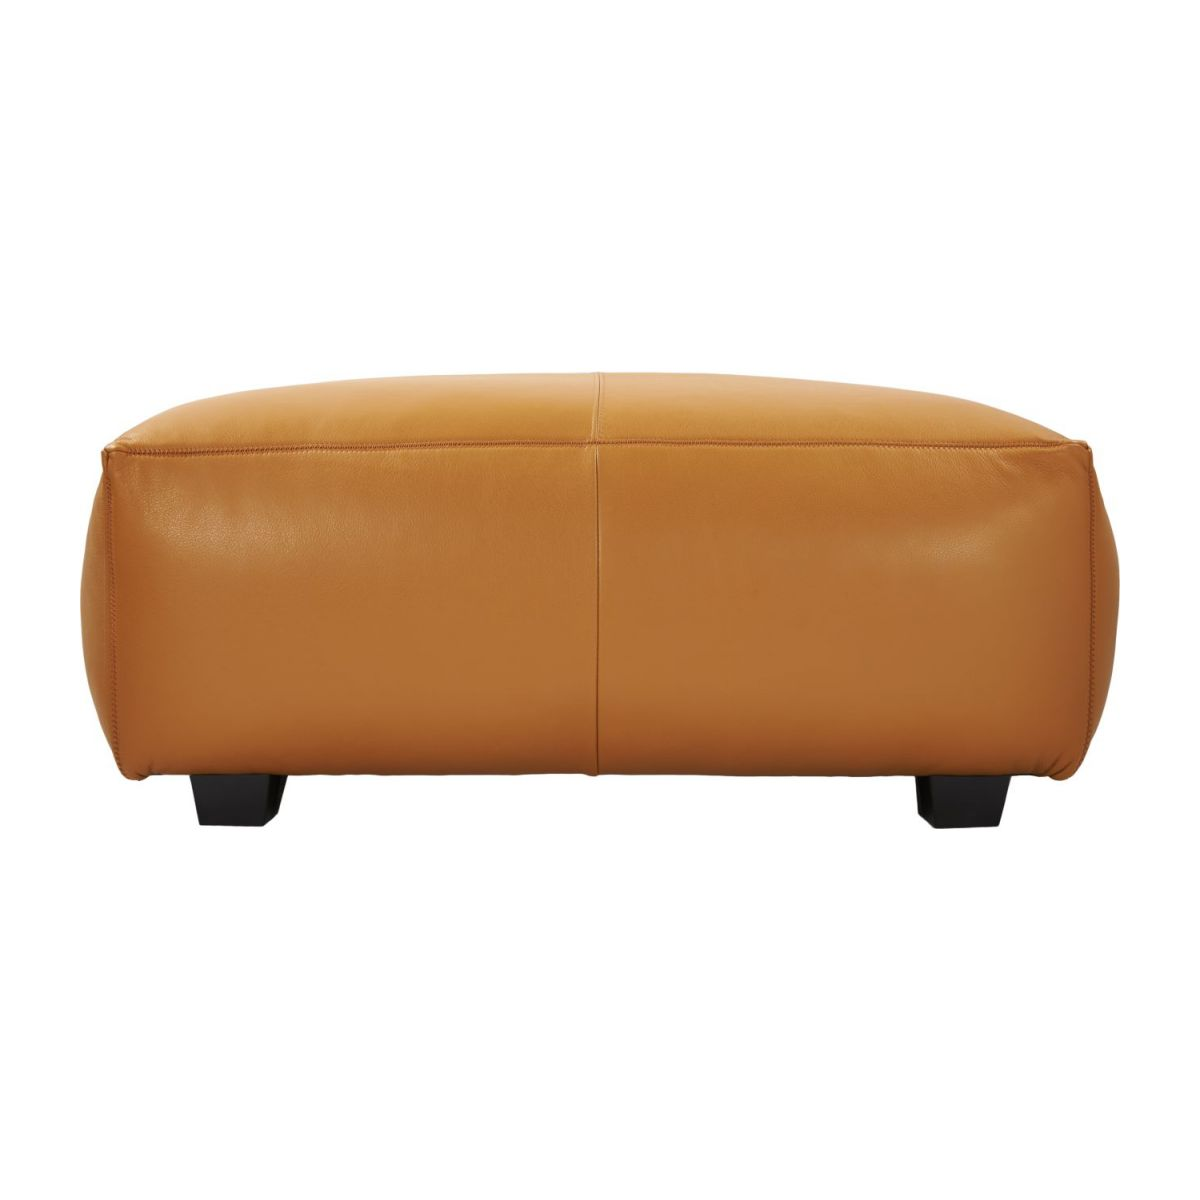 Footstool in Savoy semi-aniline leather, cognac n°4